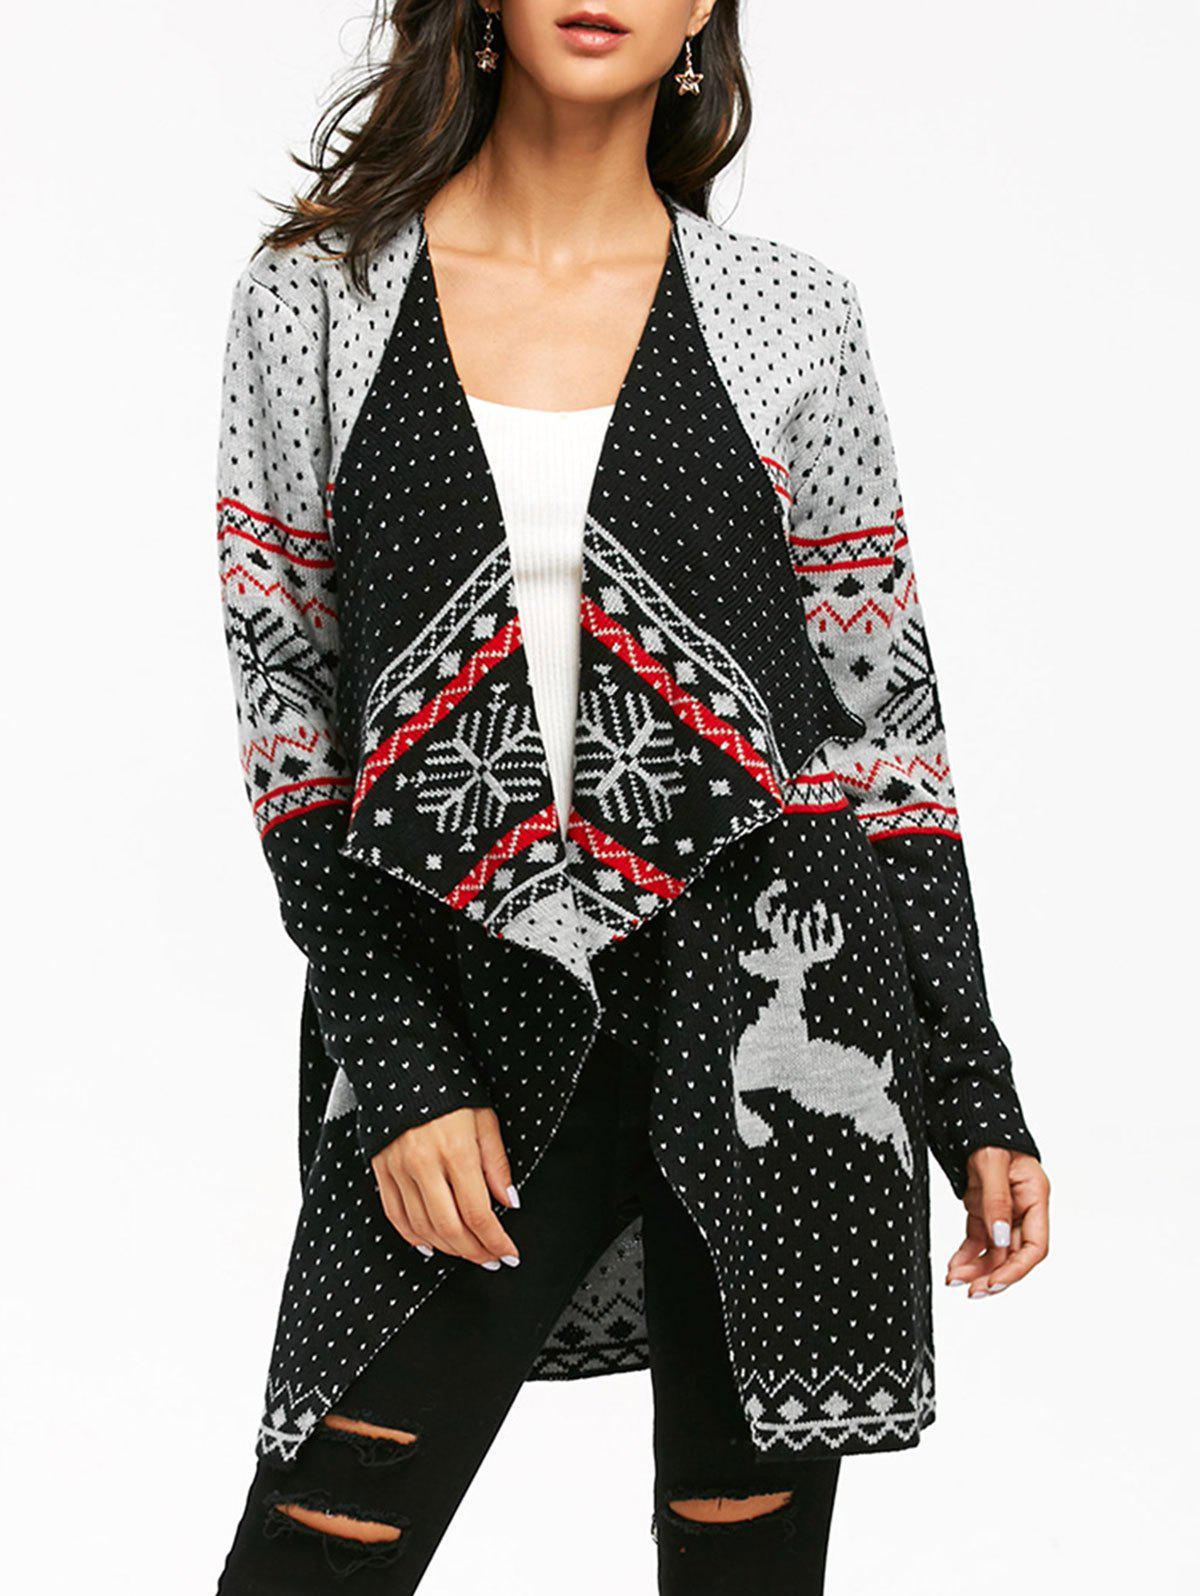 Christmas Reindeer Polka Dot Draped Tunic Cardigan - COLORMIX XL